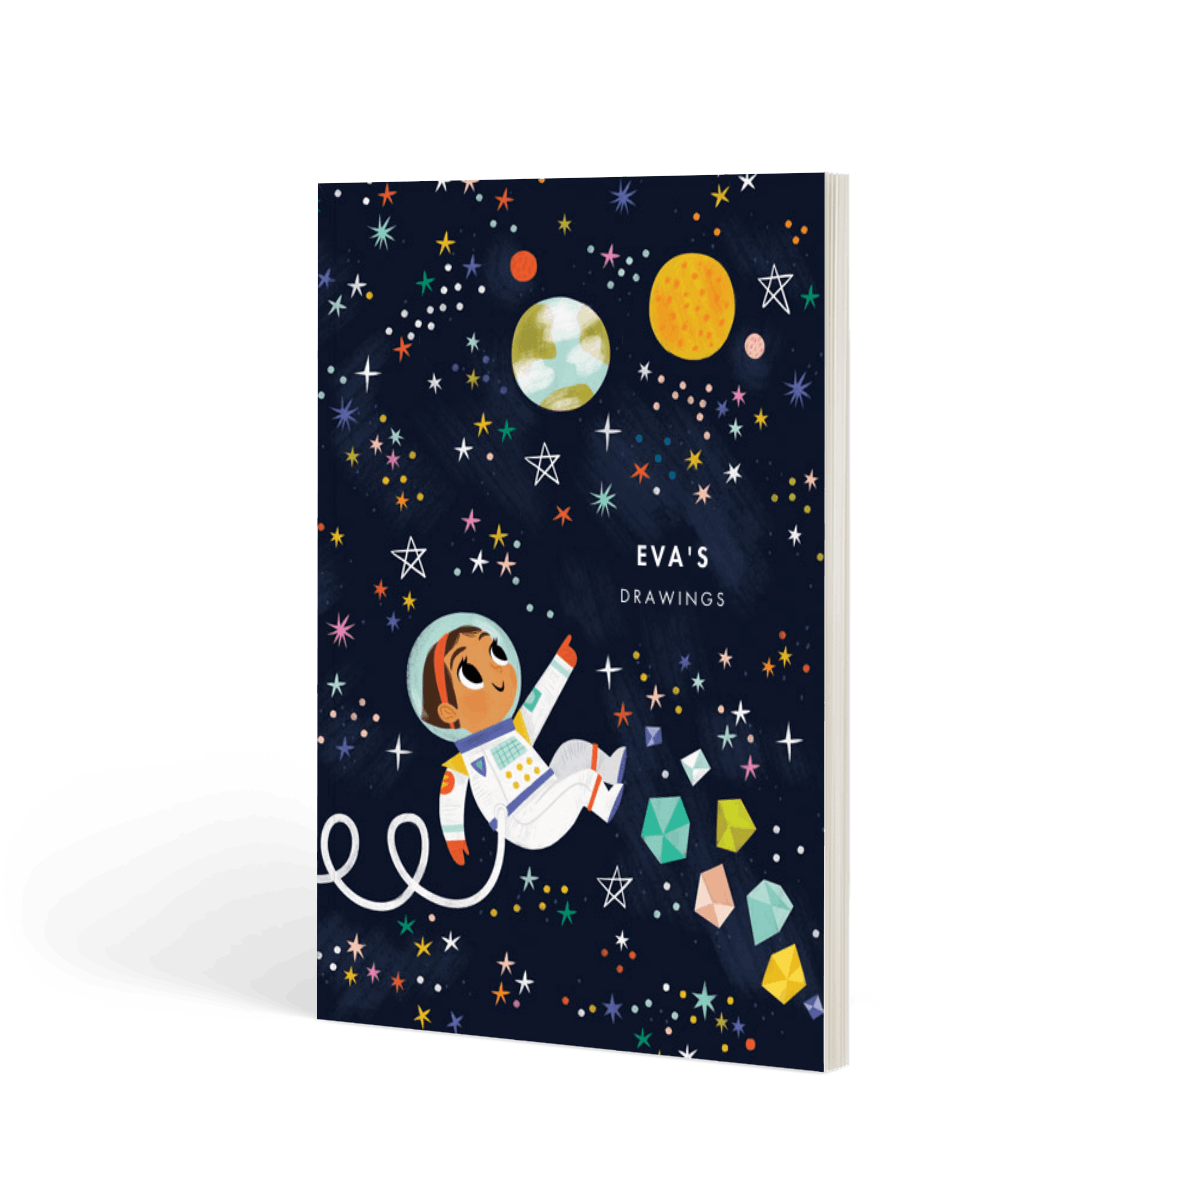 Https%3a%2f%2fwww.papier.com%2fproduct image%2f31681%2f3%2fastronaut girl ii 7959 front 1511526812.png?ixlib=rb 1.1